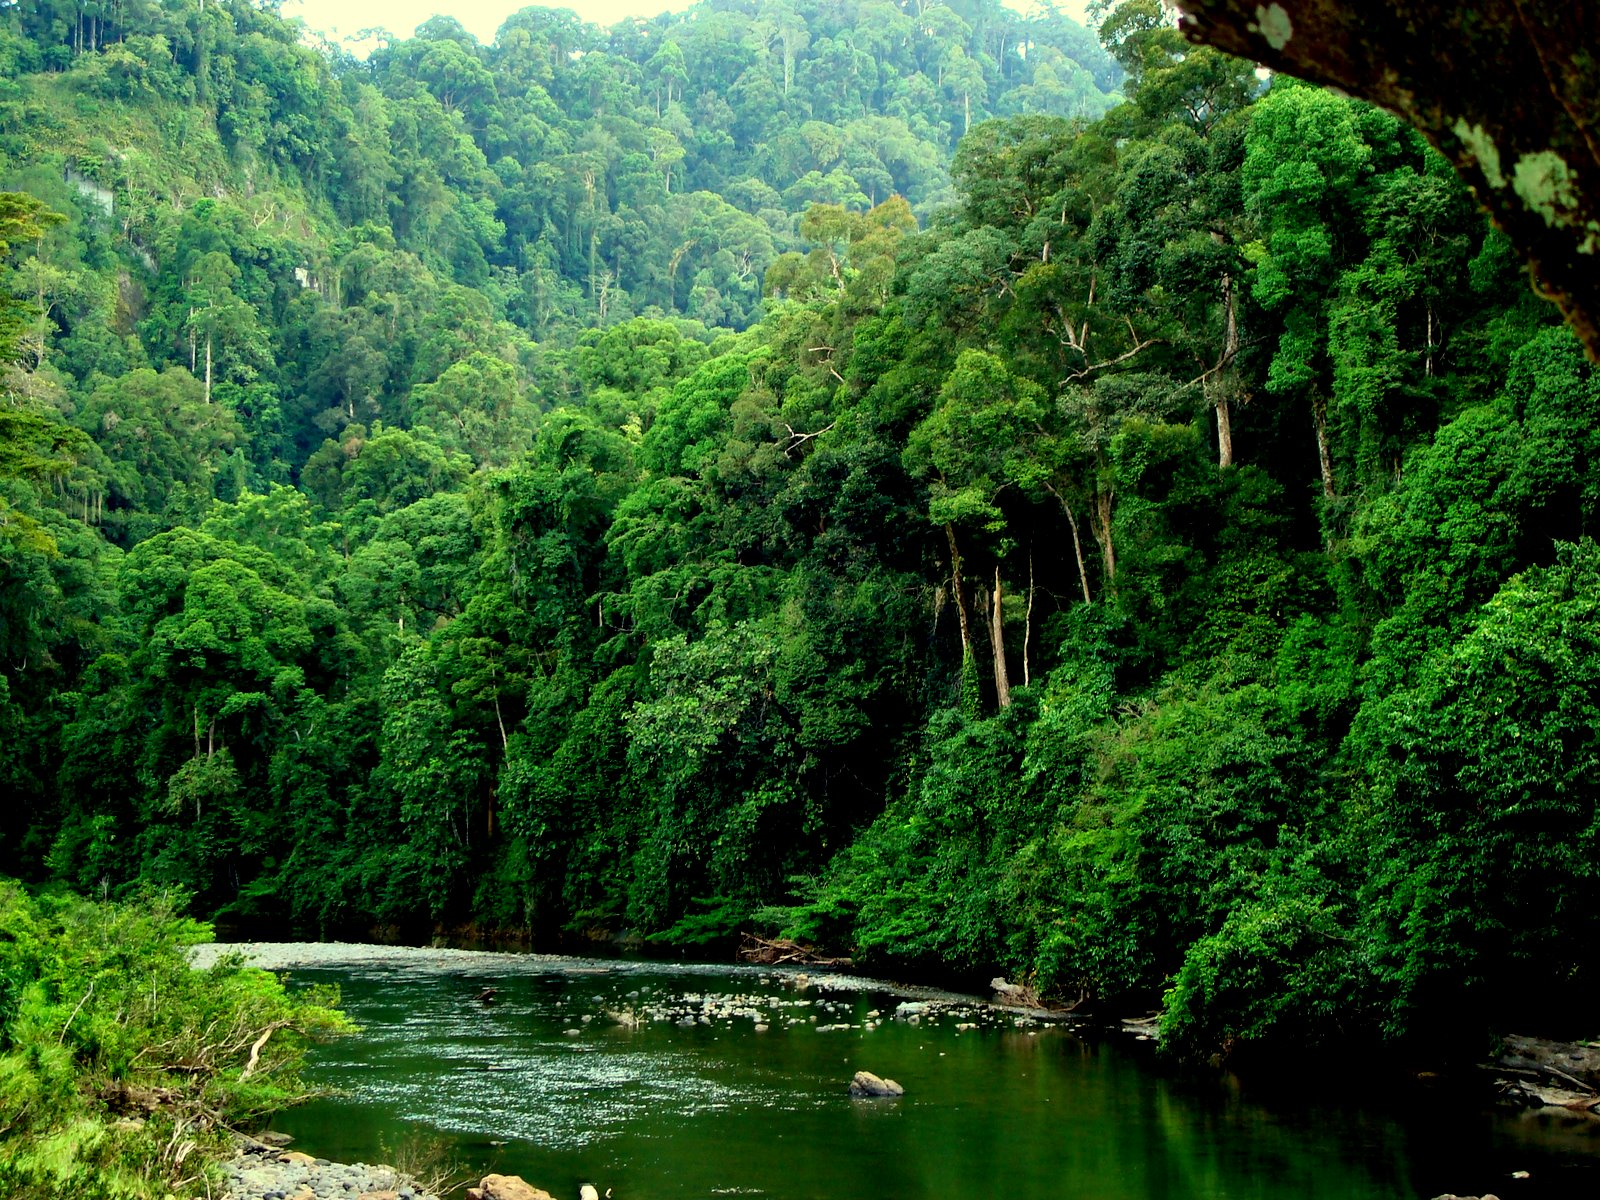 The-Wild-and-Natural-Ecosystem-Tanjung-Puting-National-Park